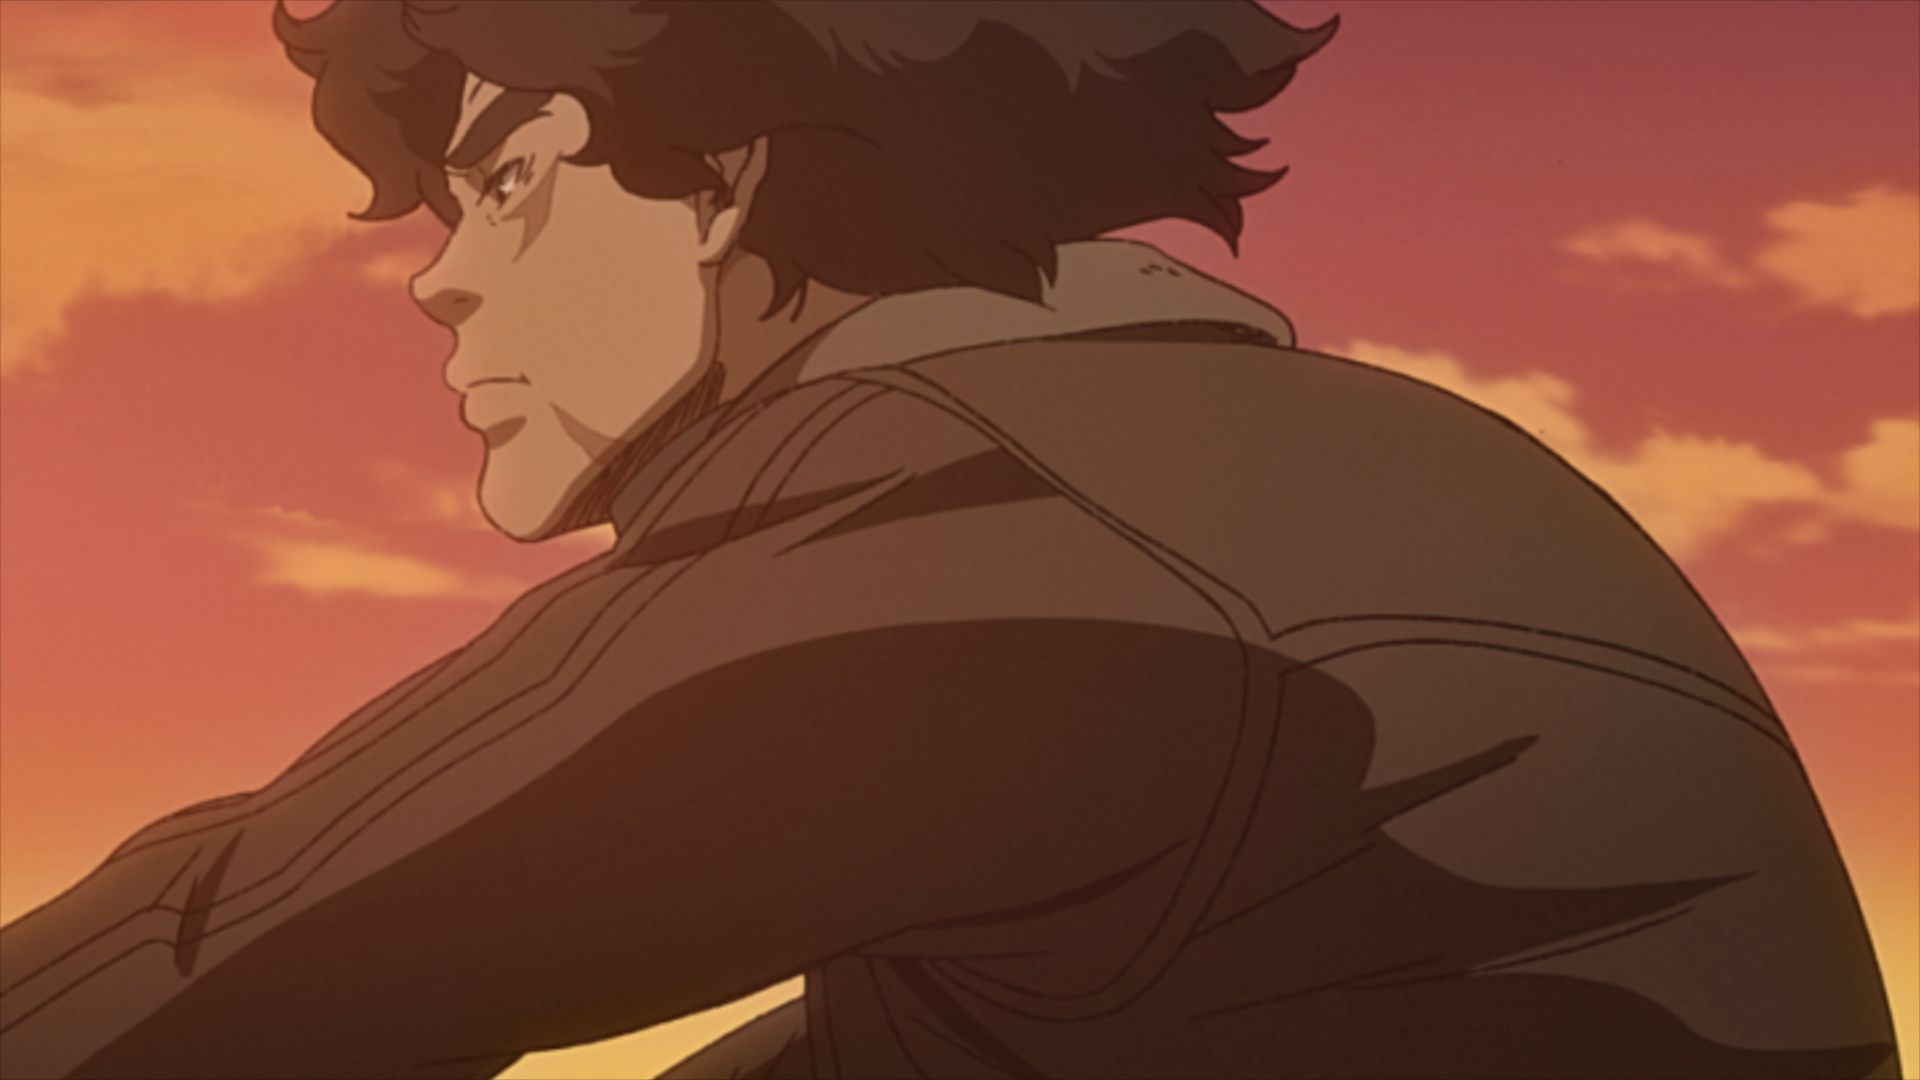 Joe riding off in the sunset in Megalo Box 2